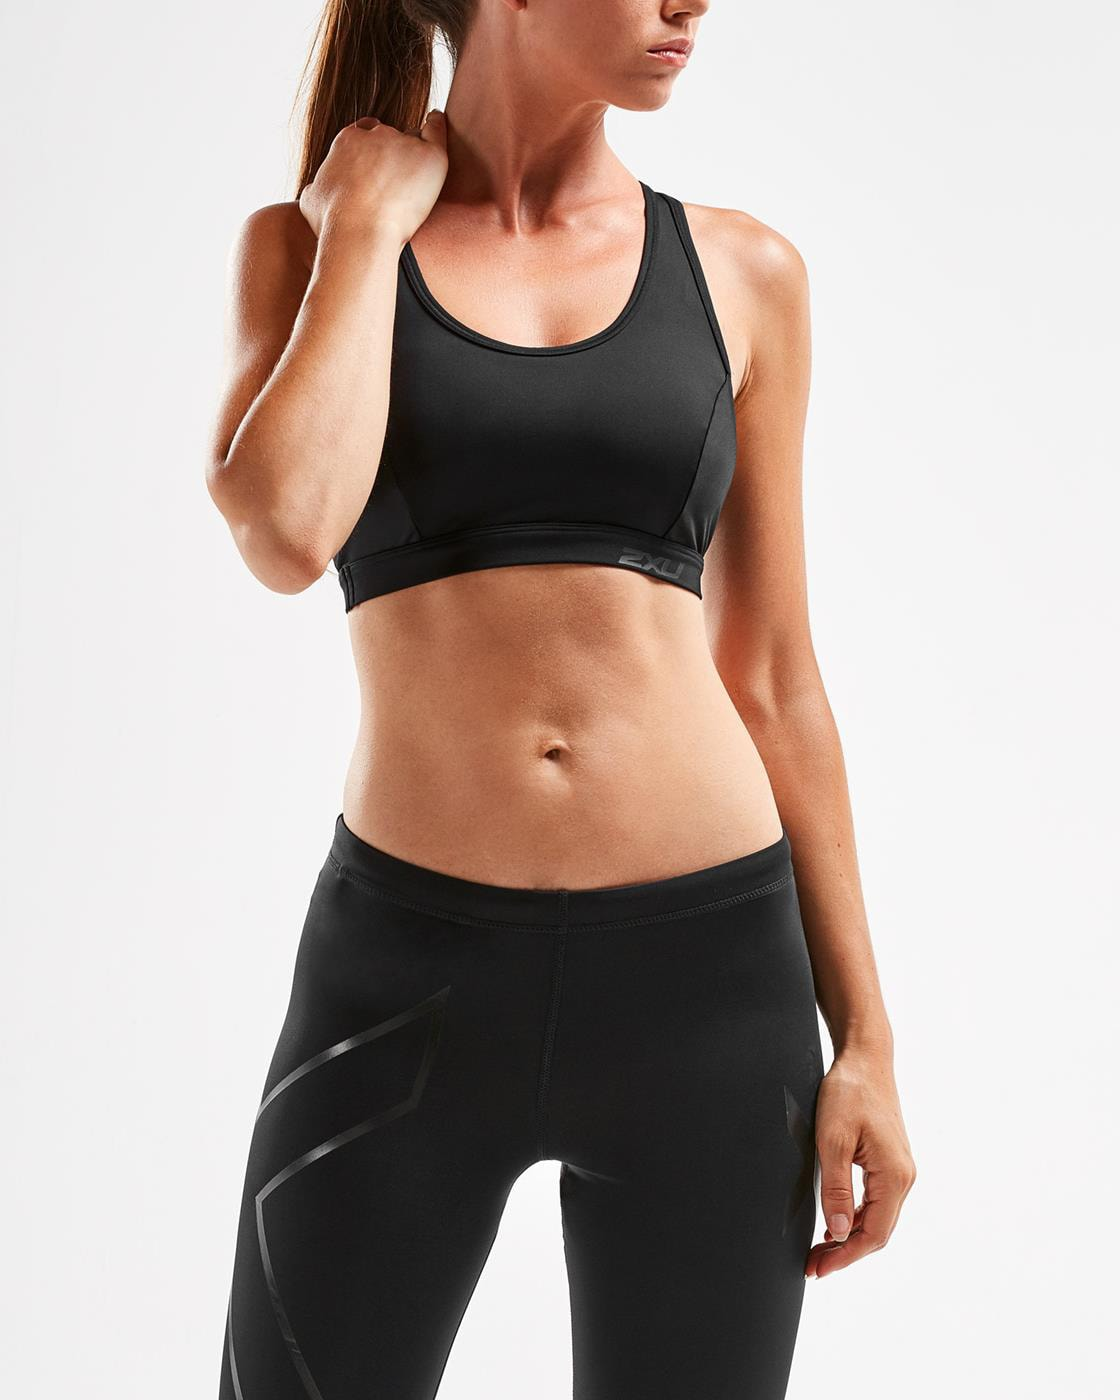 WEB_Image 2XU X-VENT Strappy Back Crop Dame wr5638a_blk-blk_02-509433699